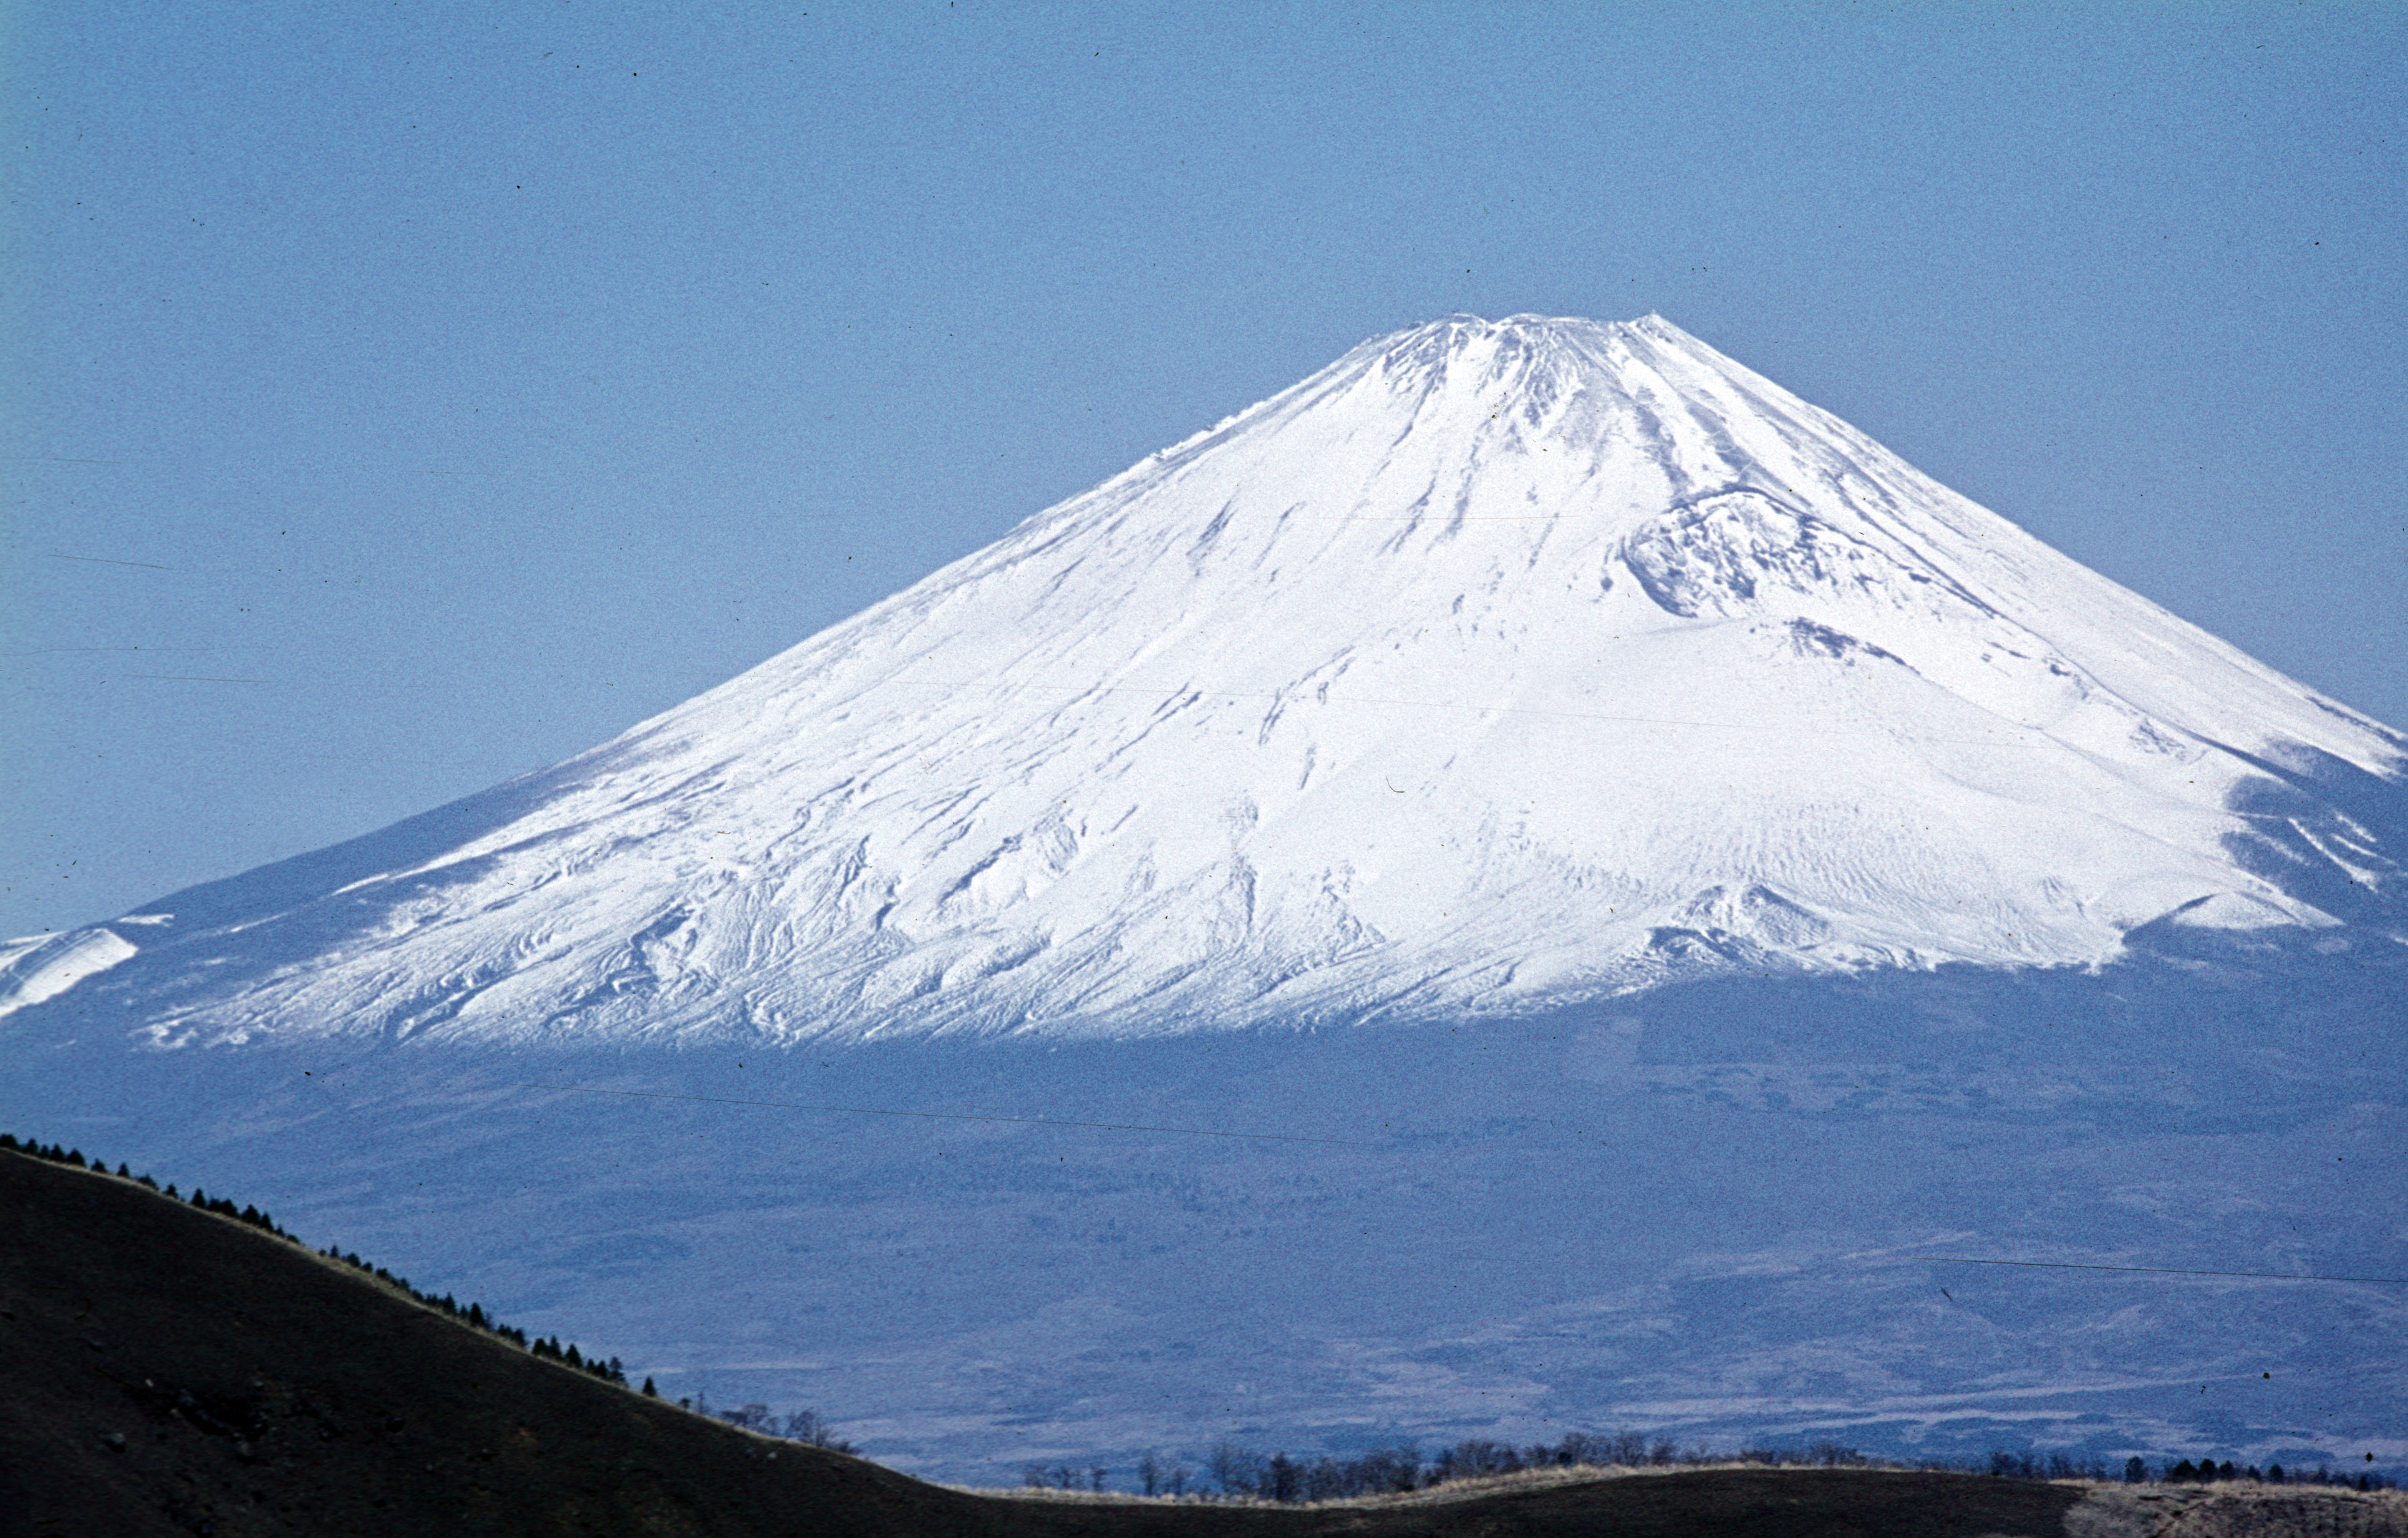 File Fujisan 008 hg on 204